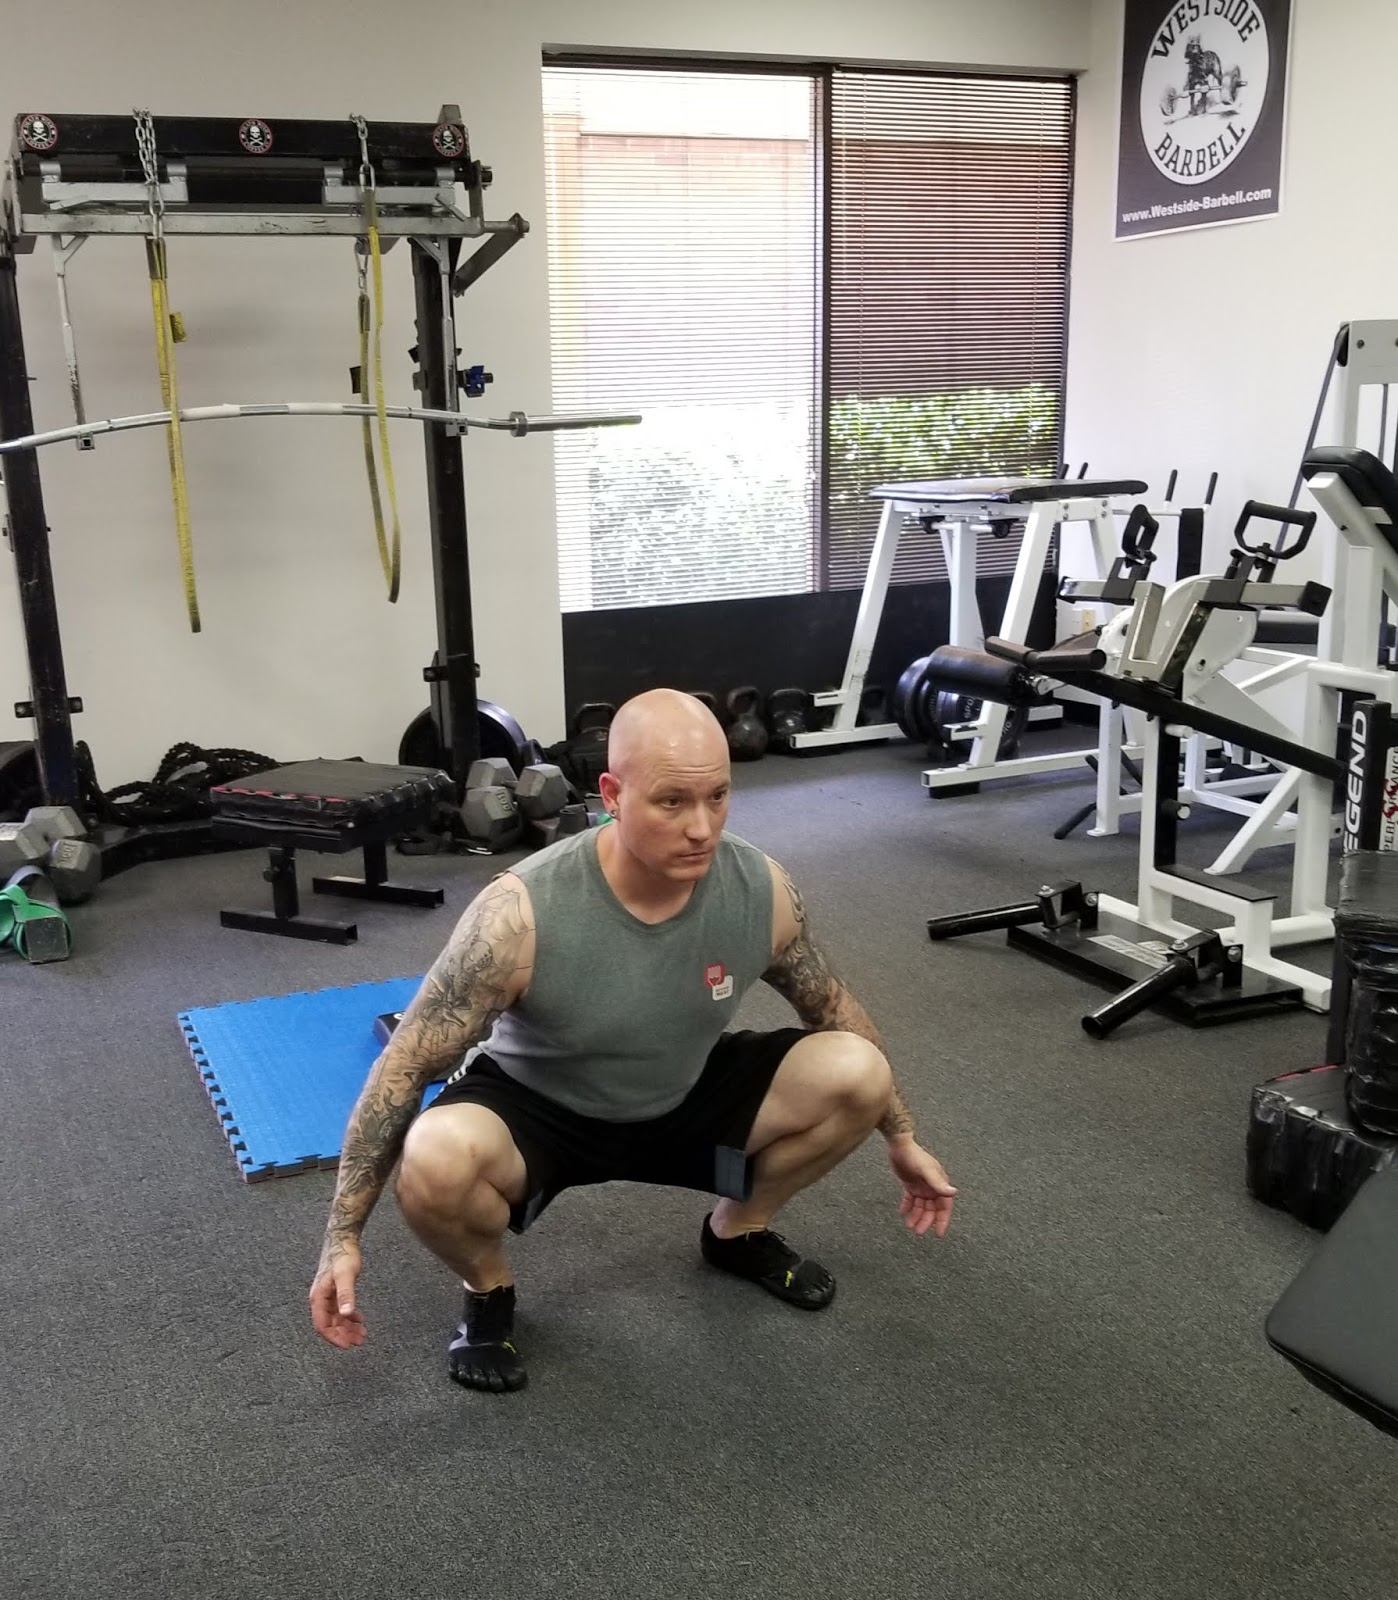 Scott Shetler's Strength and Health Blog: General Physical